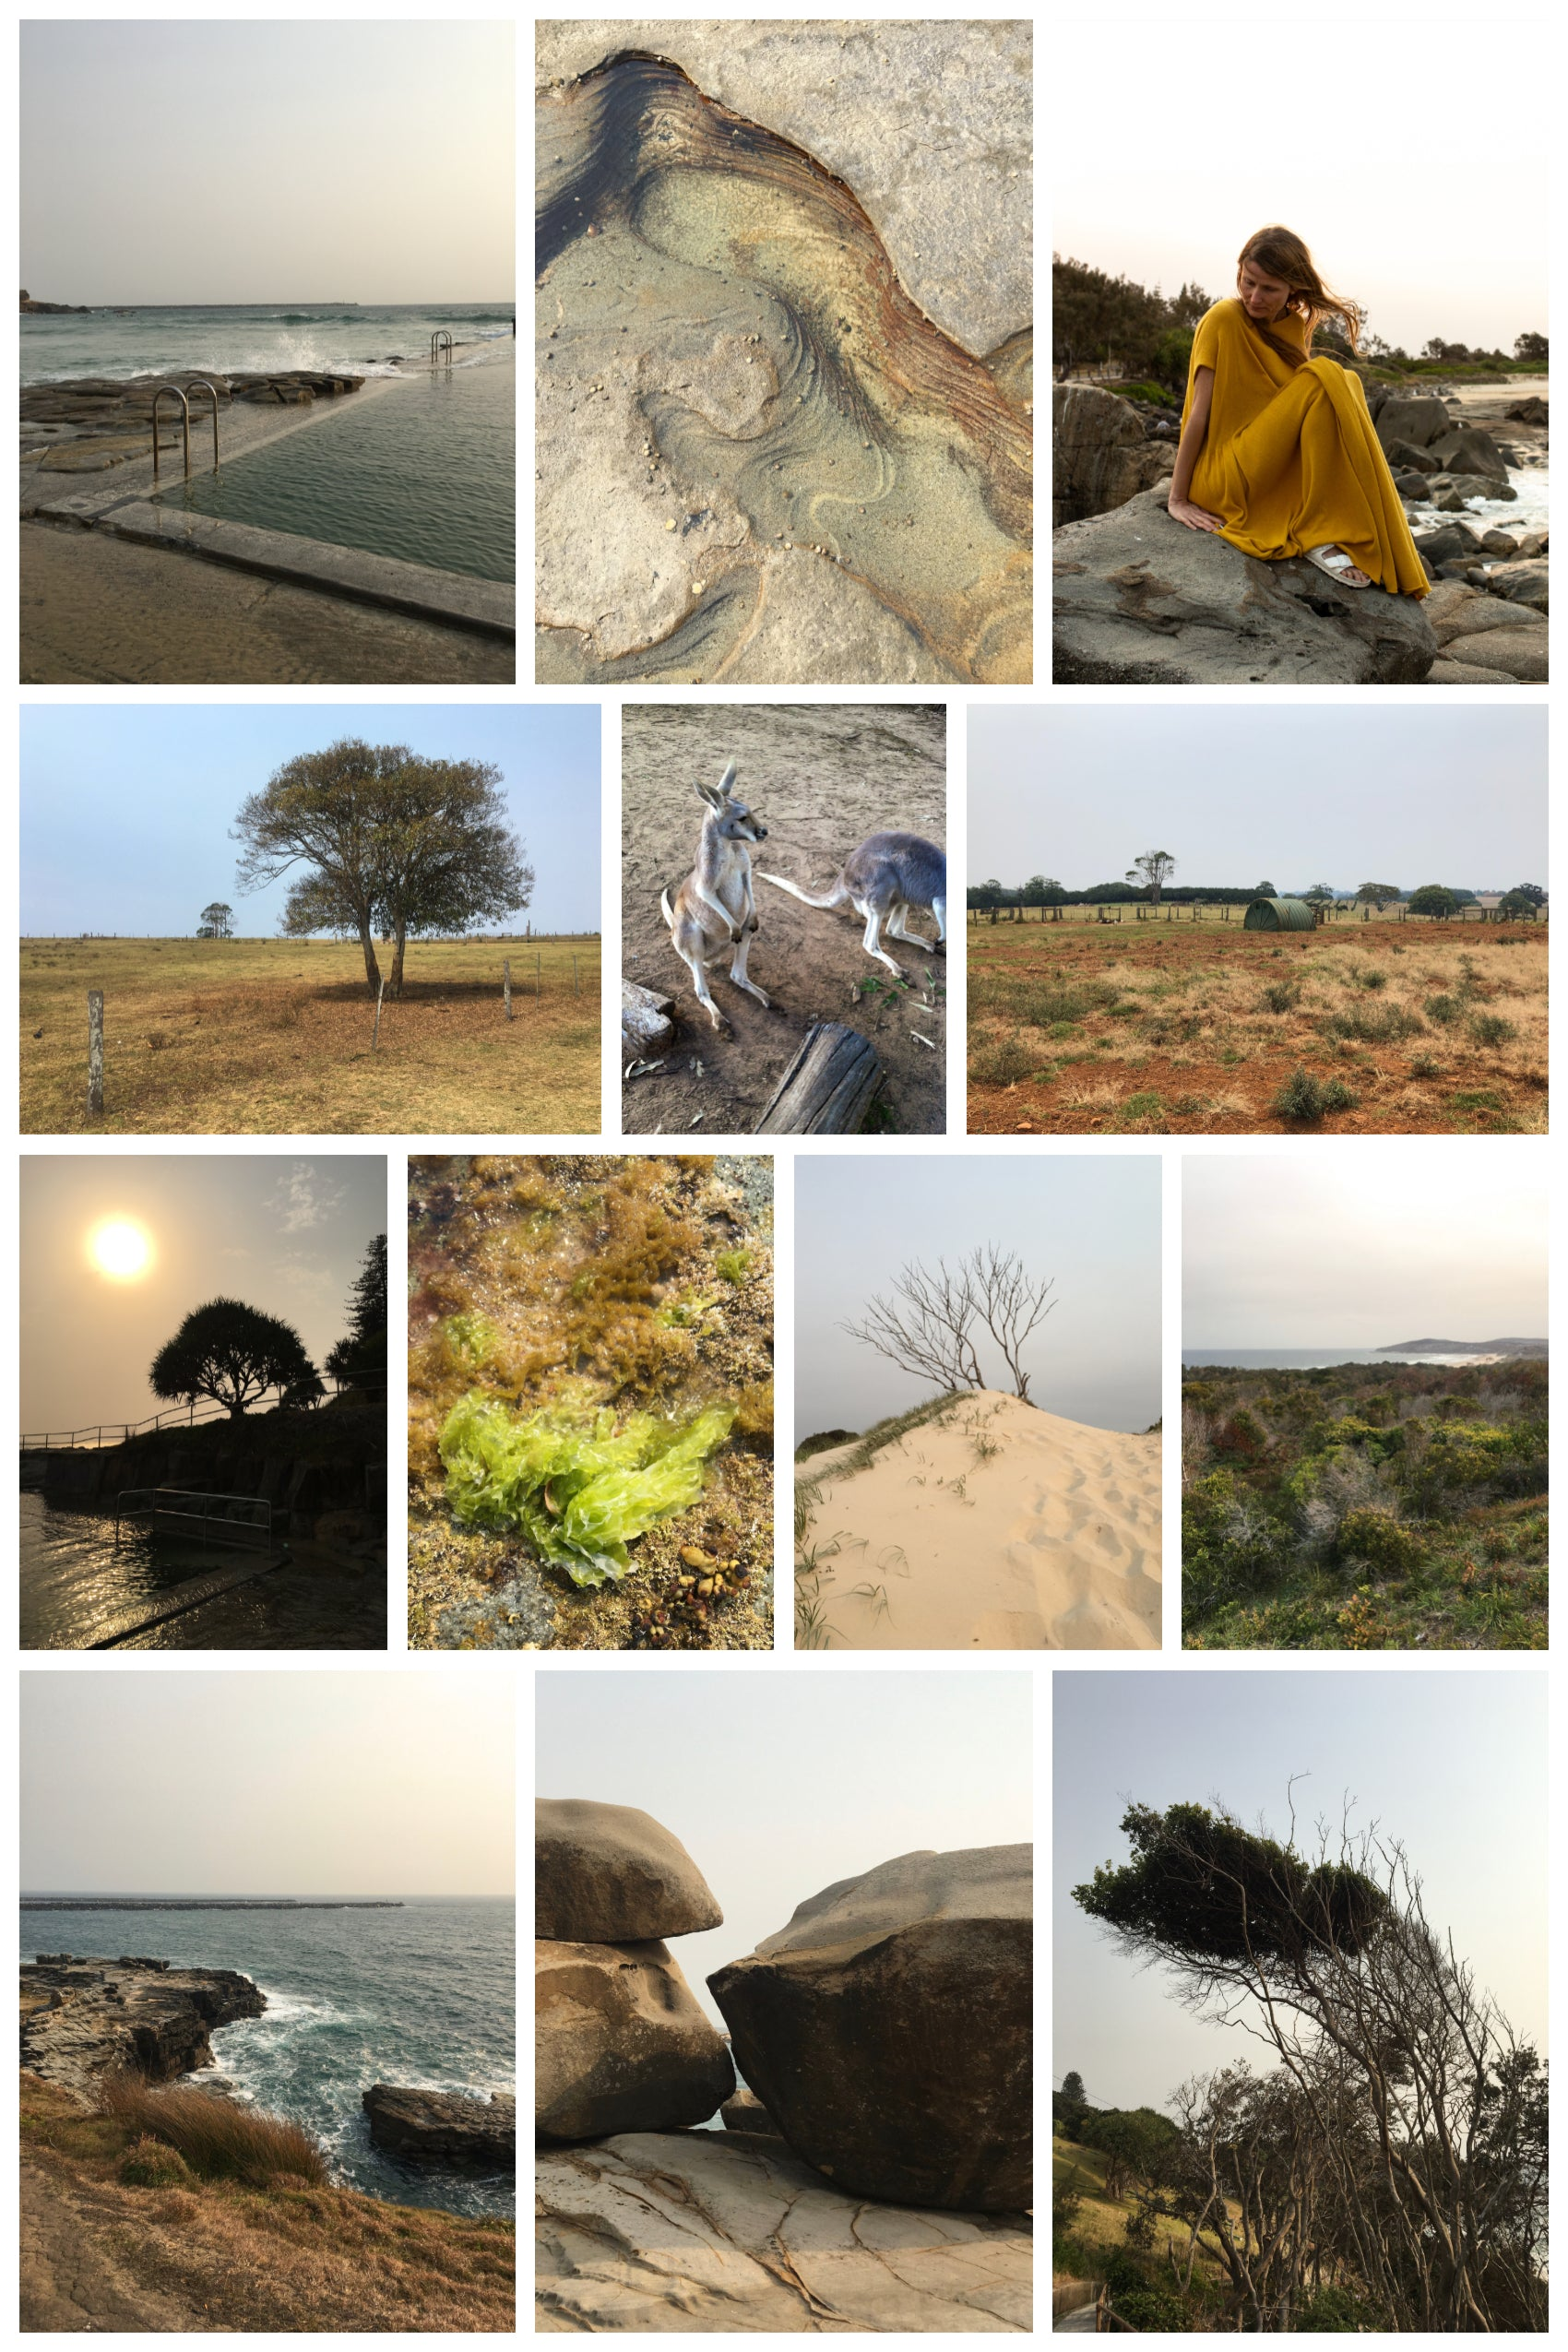 A collage of landscapes and seascapes taken in Yamba and Byron Bay, on the coast of Australia. Contains some close-up details of rock formations and seaweed. A woman wearing a yellow dress sits atop the rocks facing the ocean.